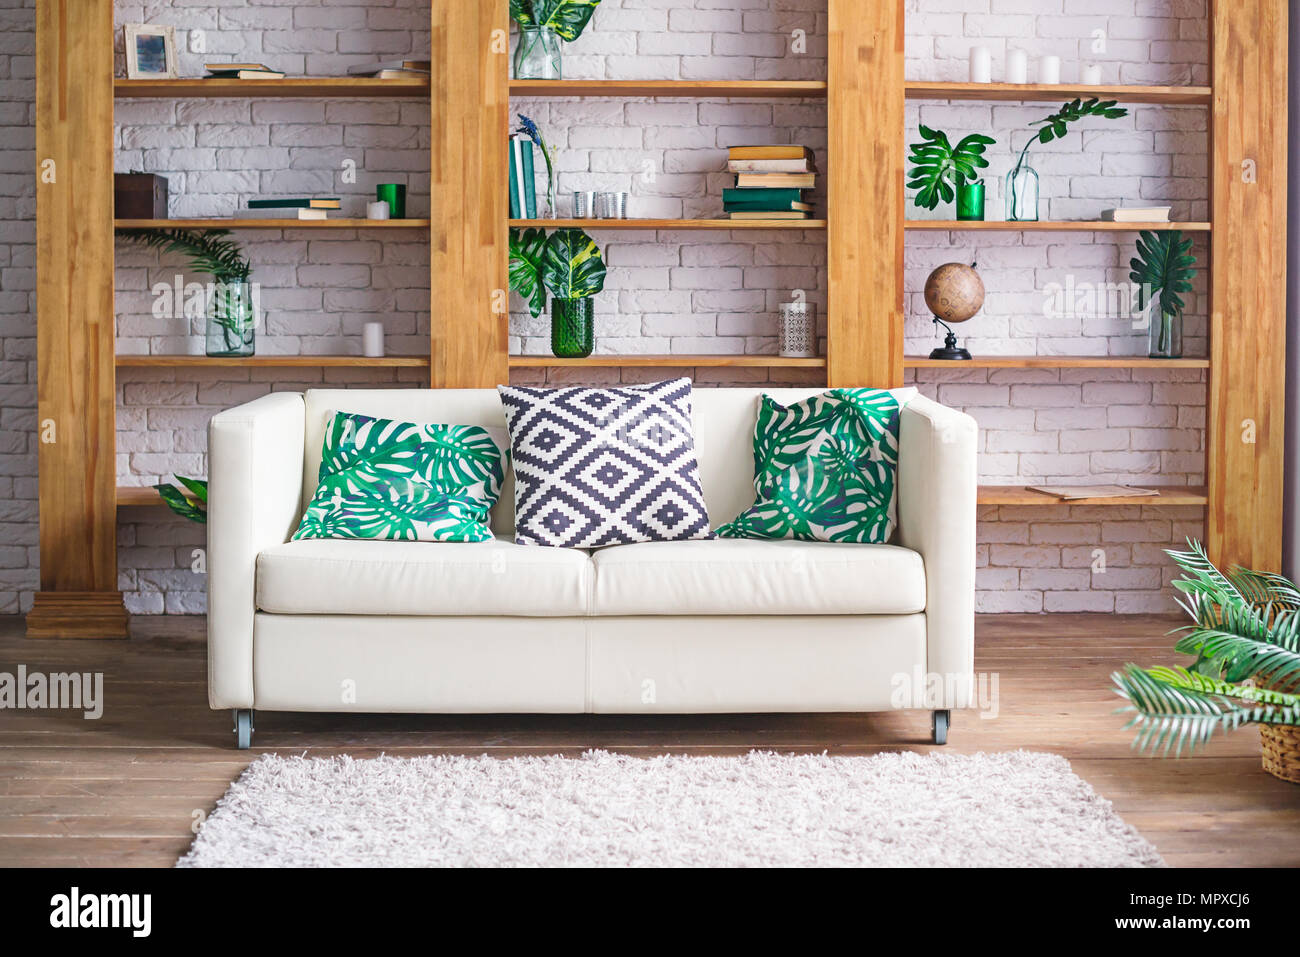 Stylish Furniture Cozy Light Room With Plants White Sofa And Stylish Furniture In